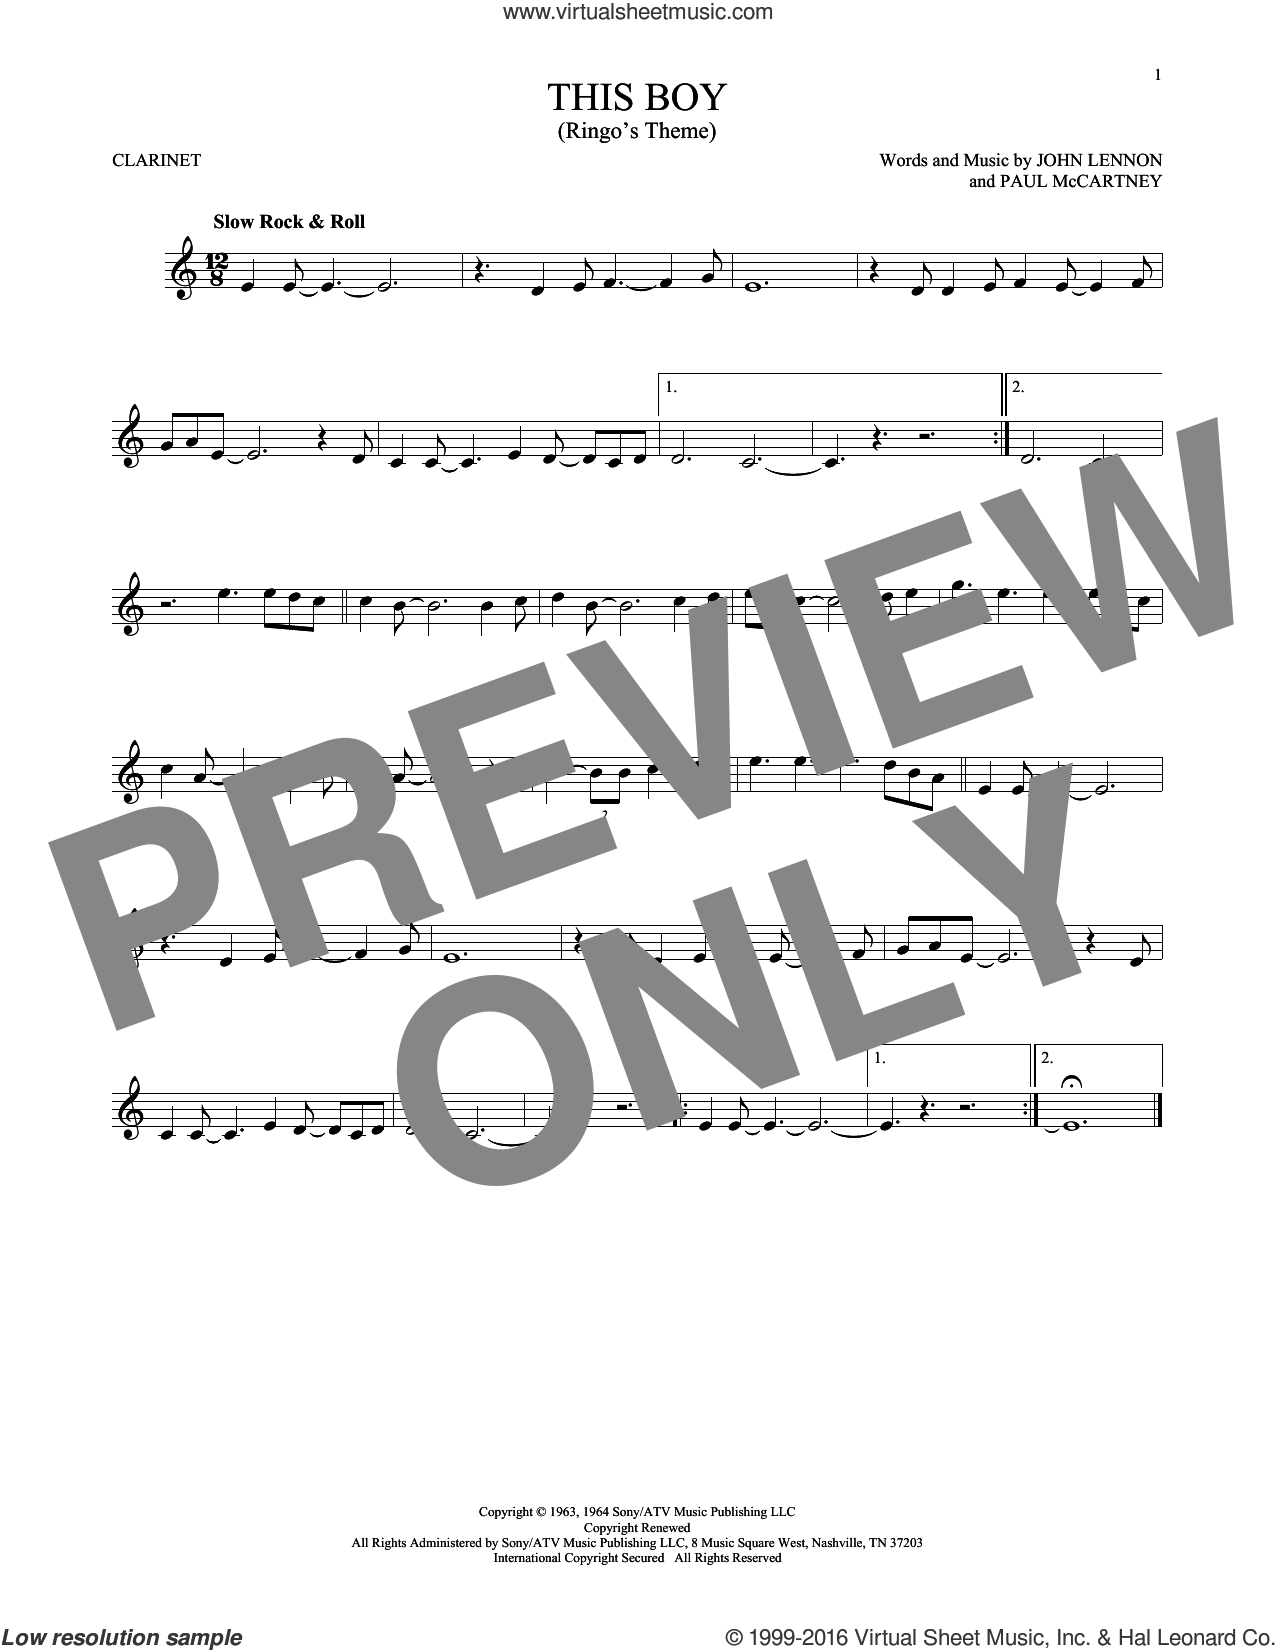 This Boy (Ringo's Theme) sheet music for clarinet solo by The Beatles, John Lennon and Paul McCartney, intermediate skill level